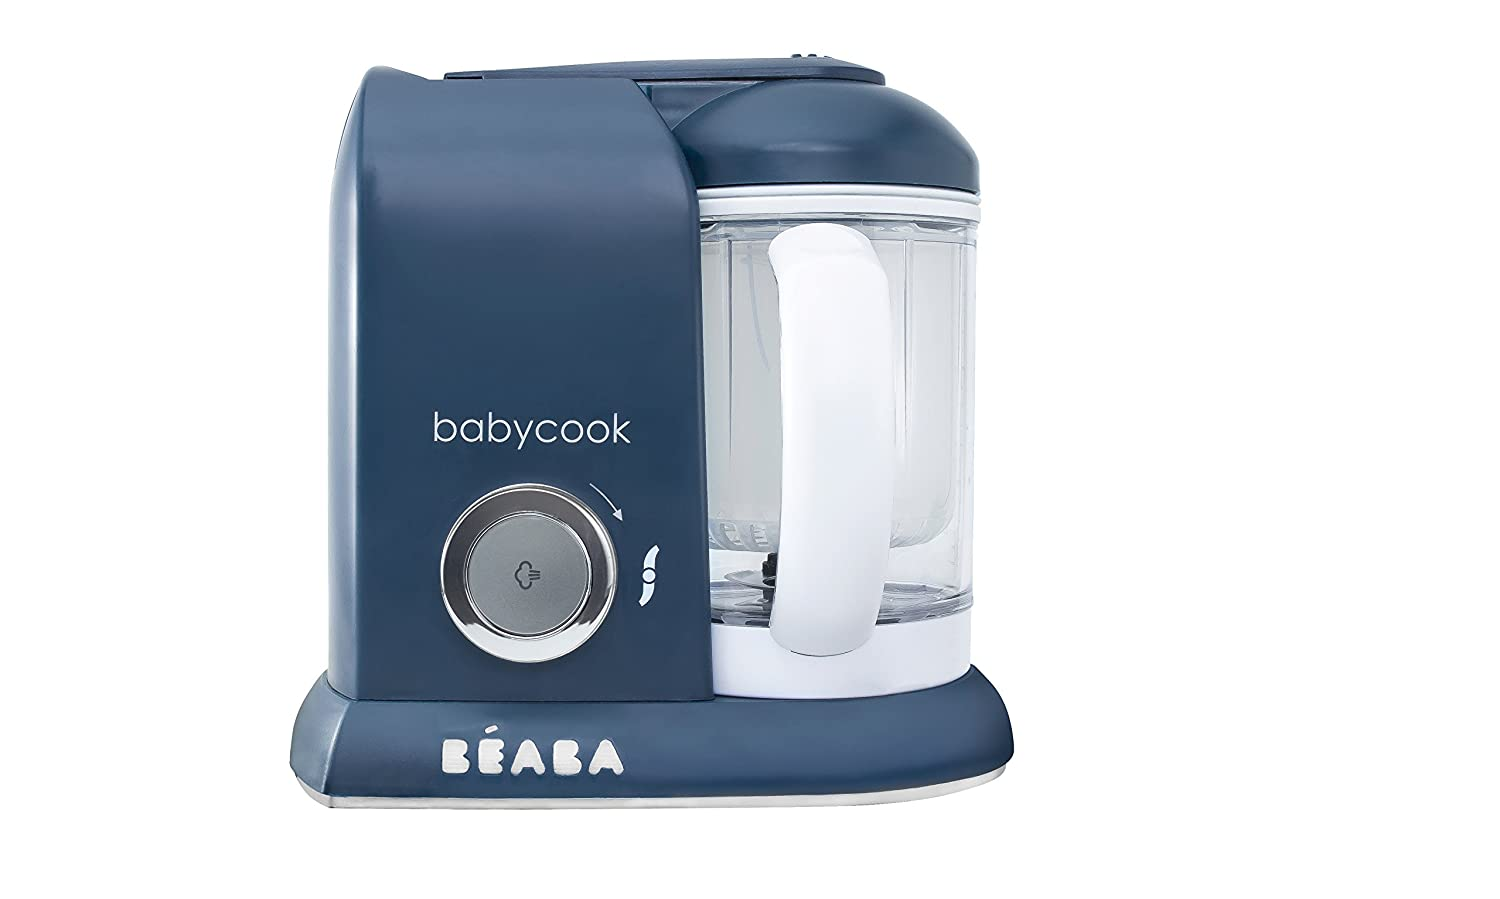 BEABA Babycook 4 in 1 Steam Cooker and Blender, Navy